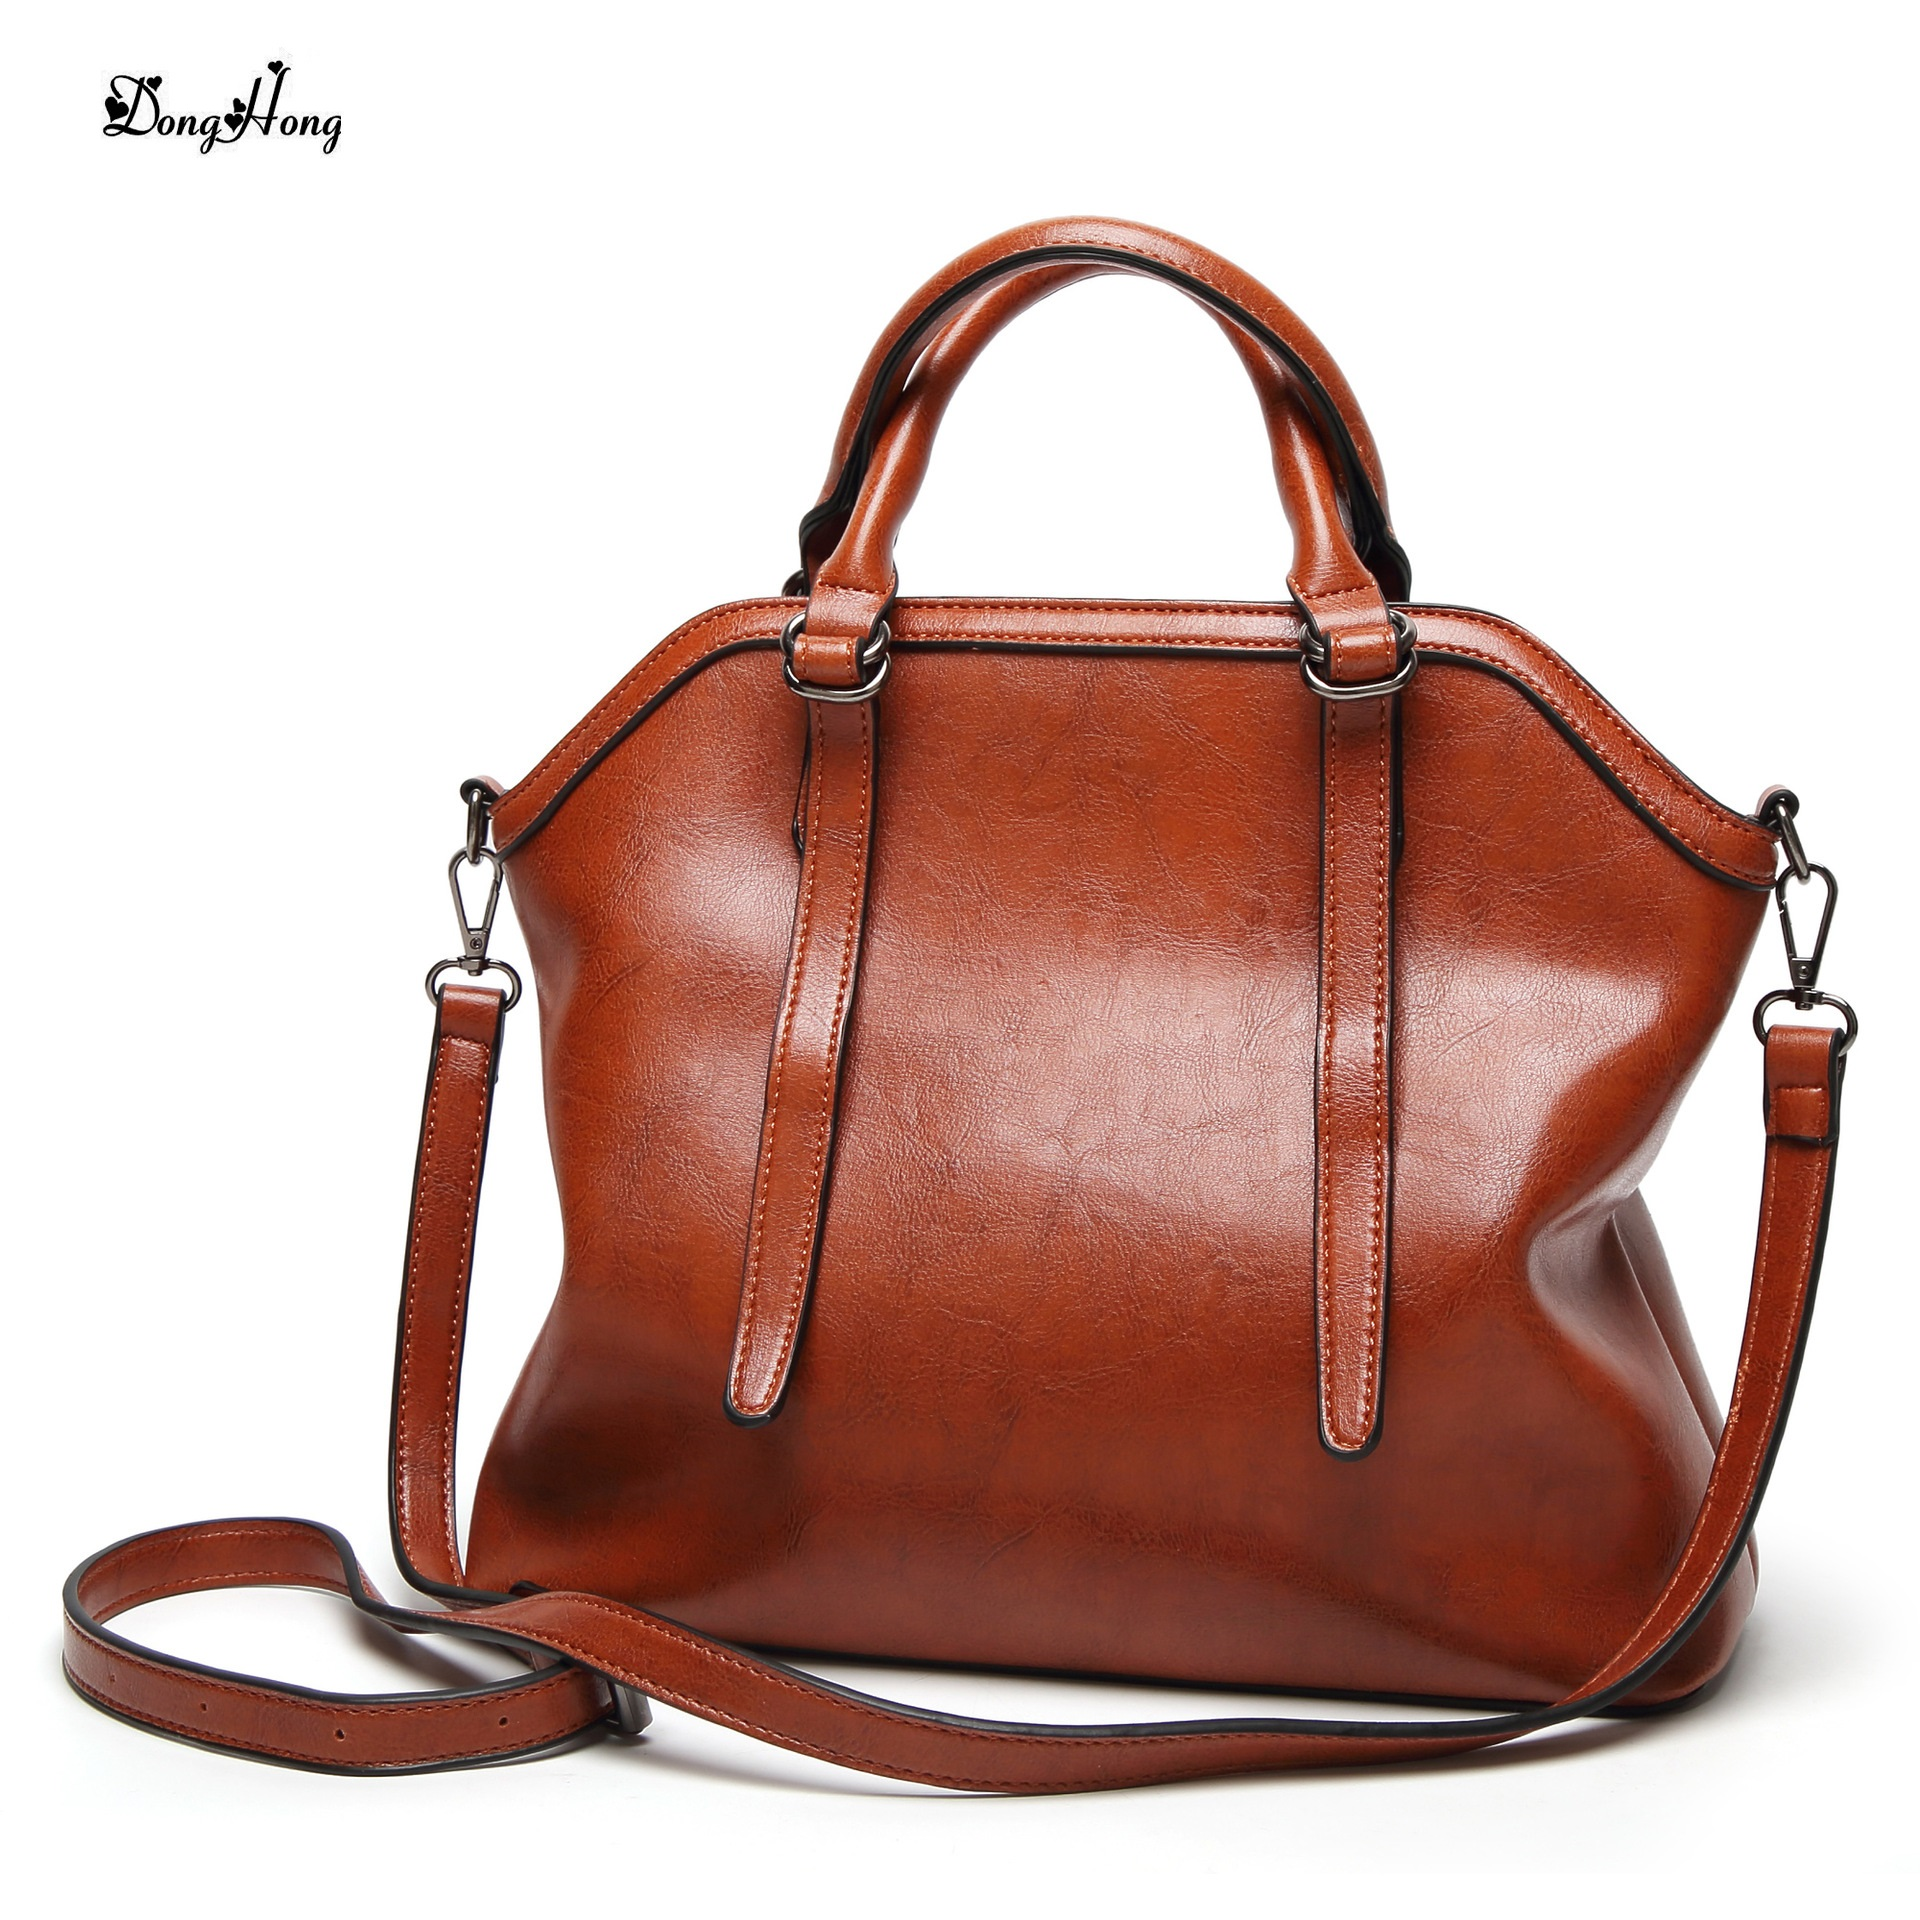 Genuine Leather Handbag Luxury Handbags Women Bags Designer Bolsa Feminina Sac a Main Bolsos Tote Borse 2017 Big Shoulder Bag zooler brand women fashion genuine leather handbag shoulder bag 2017 new luxury handbags women bags designer bolsa feminina tote